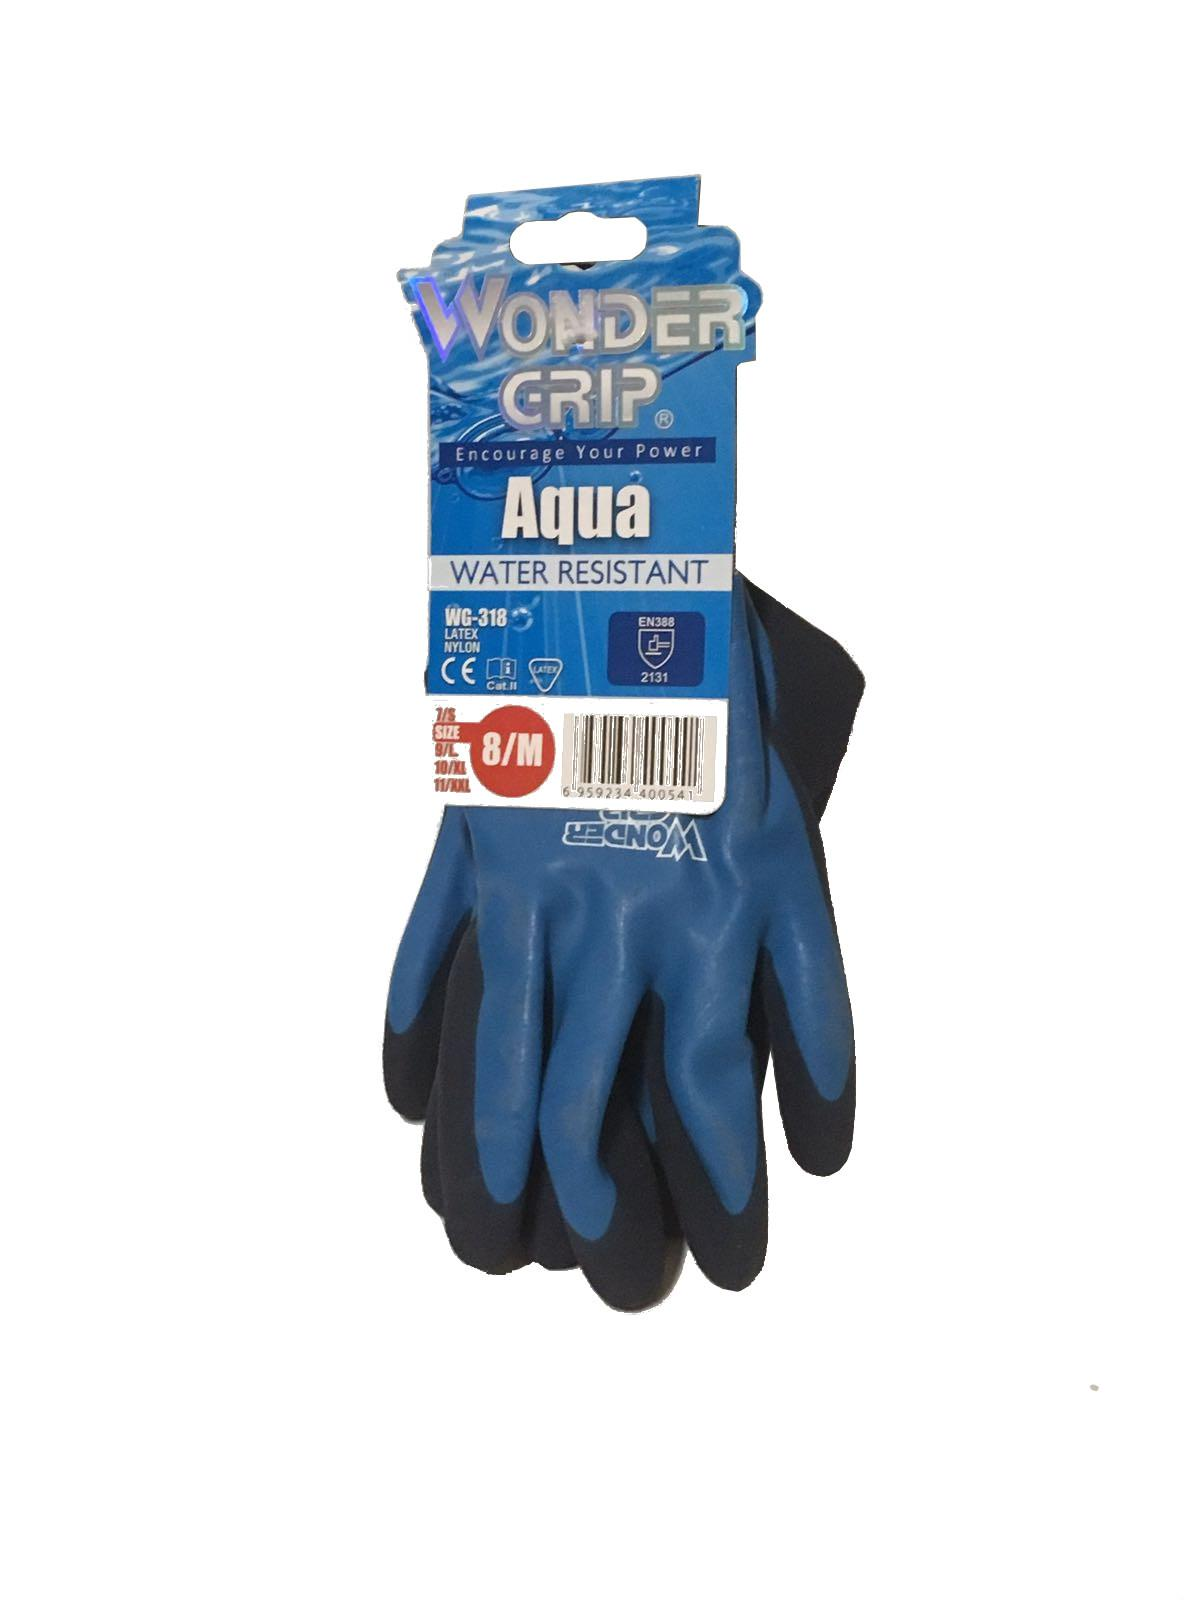 Guante safetop Wonder Grip Aqua